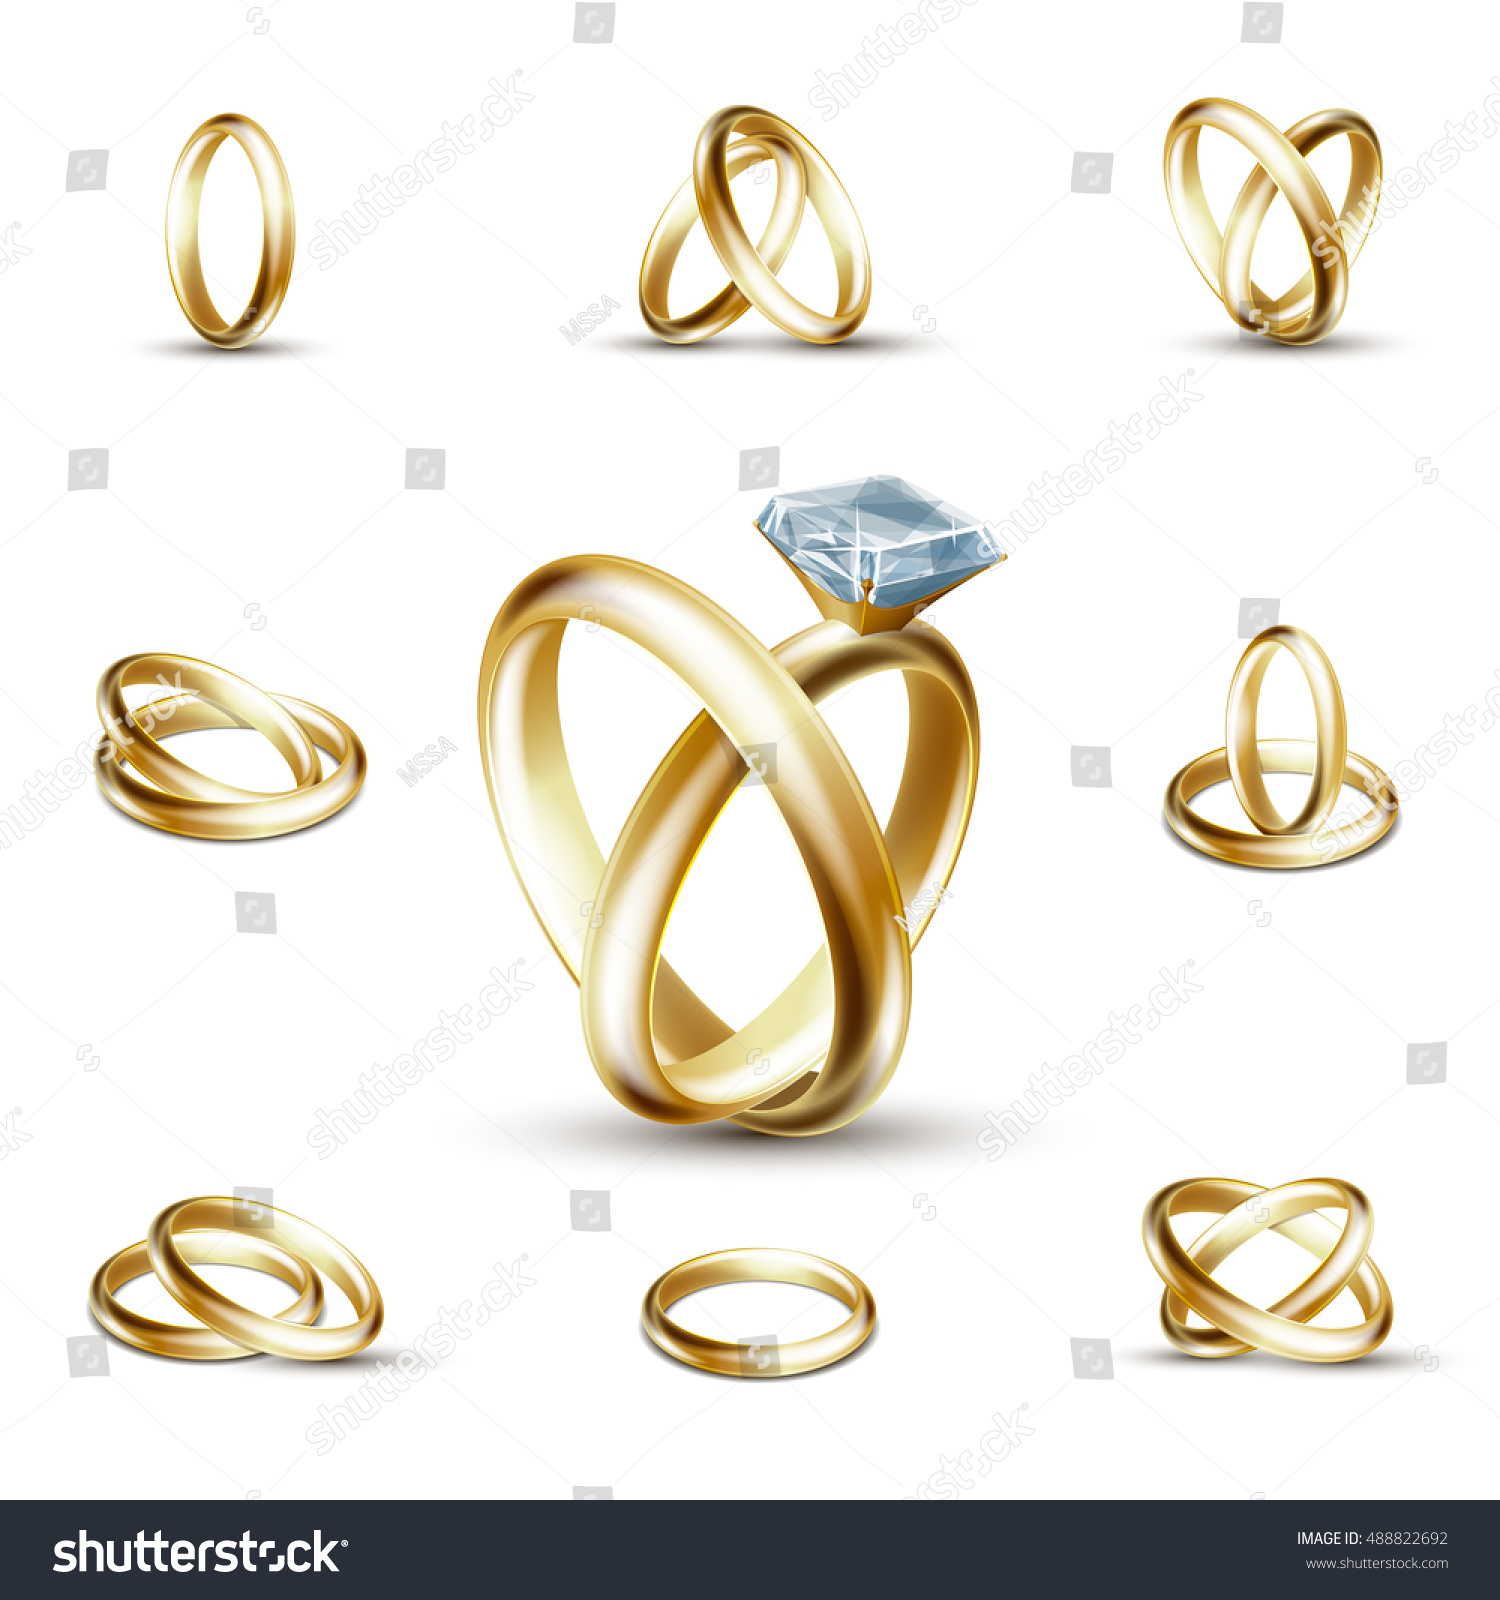 Wedding Rings Wedding Diamond Ring Vector Stock Vector 488822692 ...